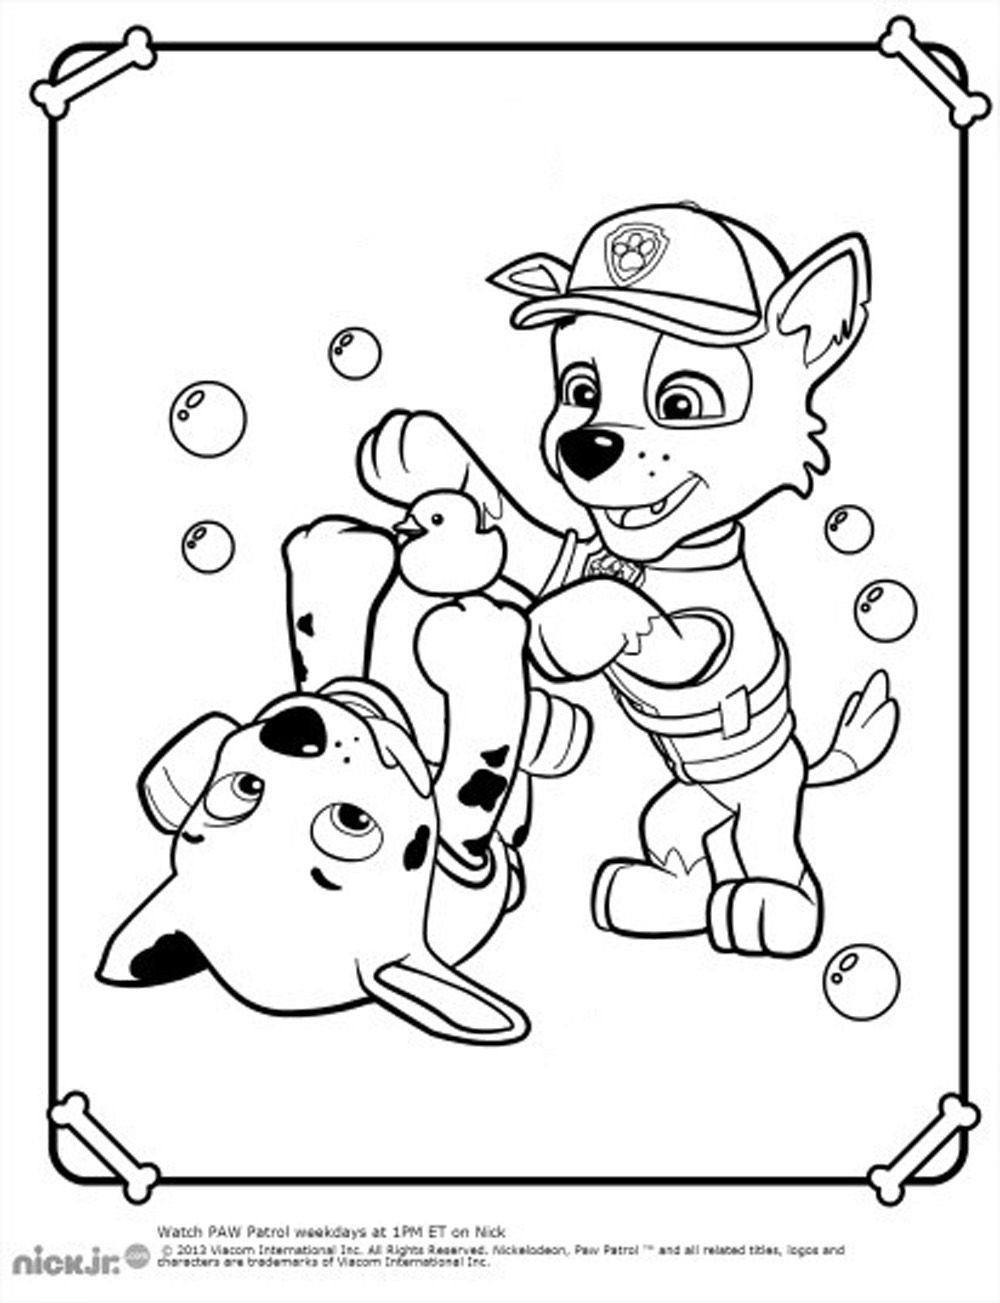 coloriage-pat-patrouille-6.jpg (1000×1303) | Coloring Pages ...